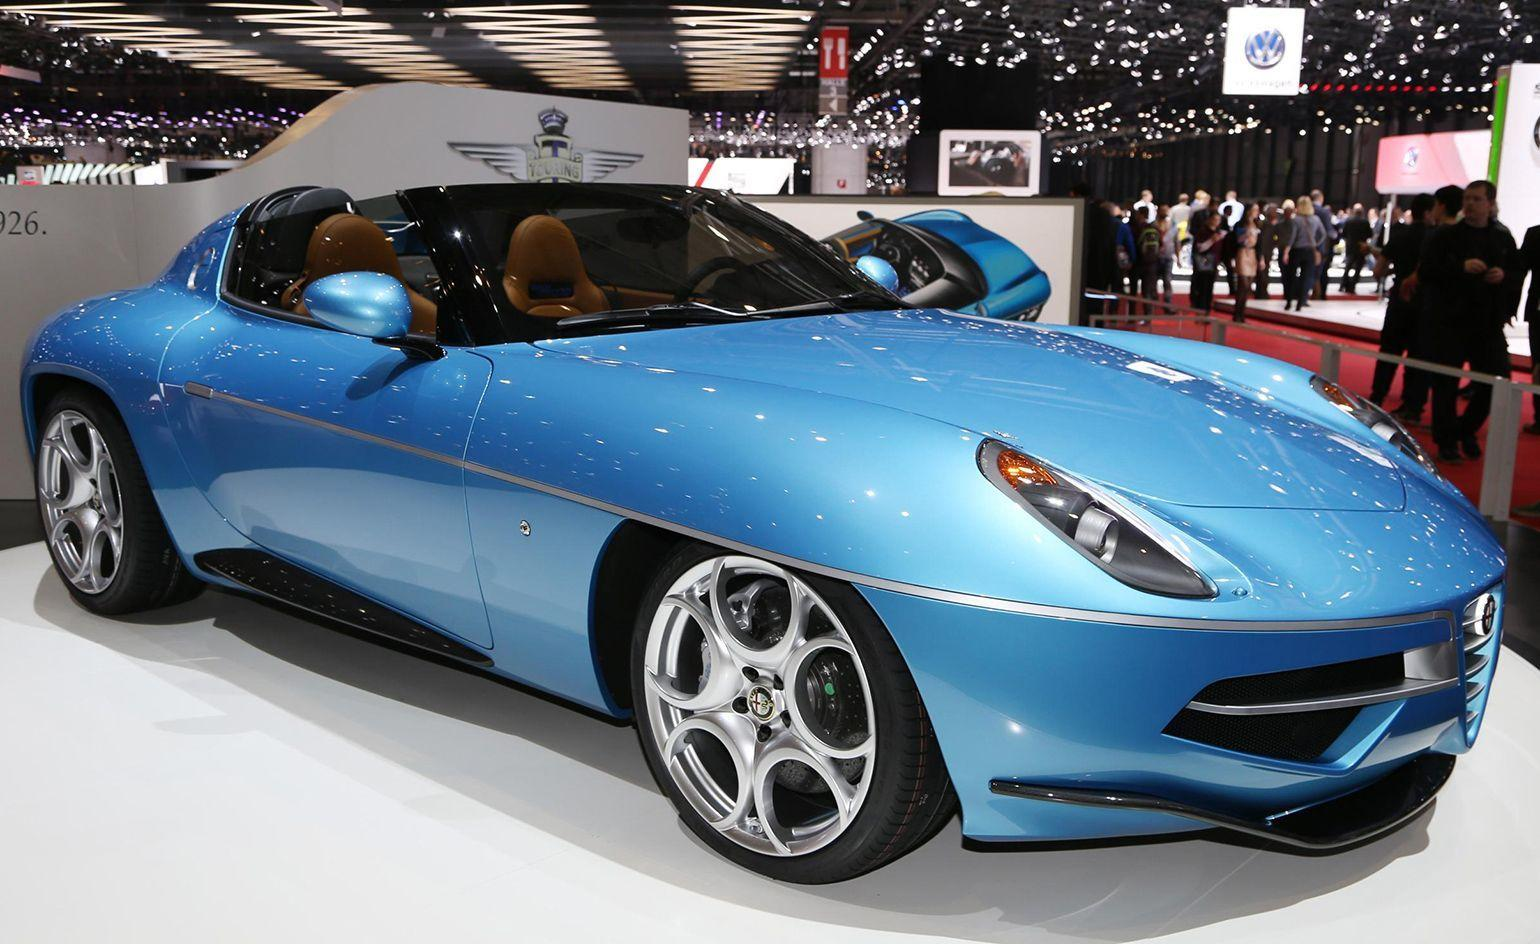 The best new cars and concepts from Geneva Motor Show 2016